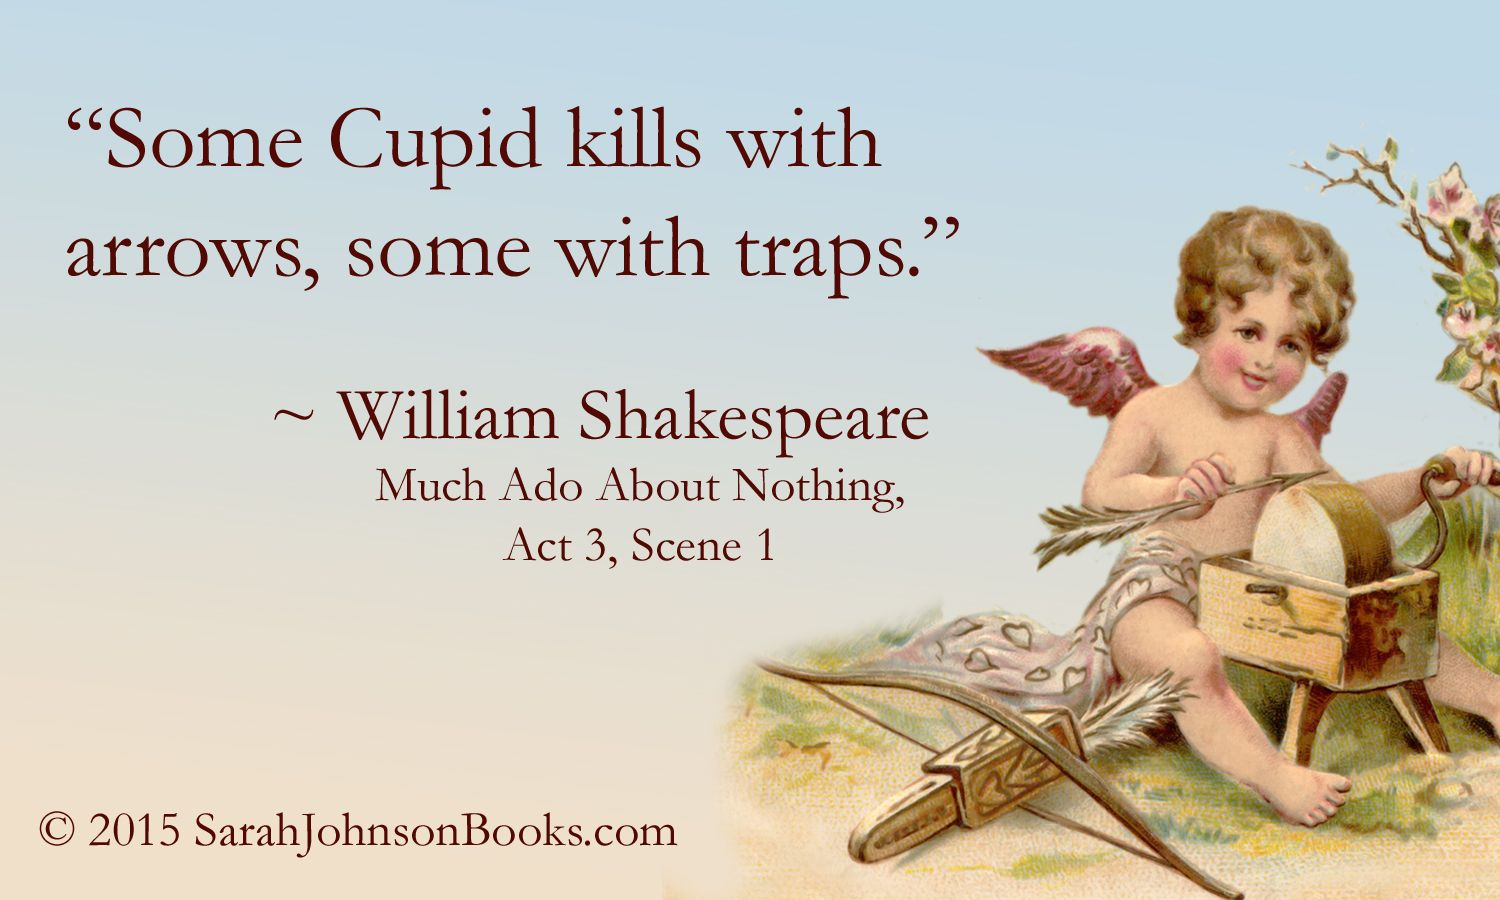 """Some Cupid kills with arrows, some with traps."" ~William Shakespeare, Much Ado About Nothing, Act 3, Scene 1  (c) SarahJohnsonBooks.com"